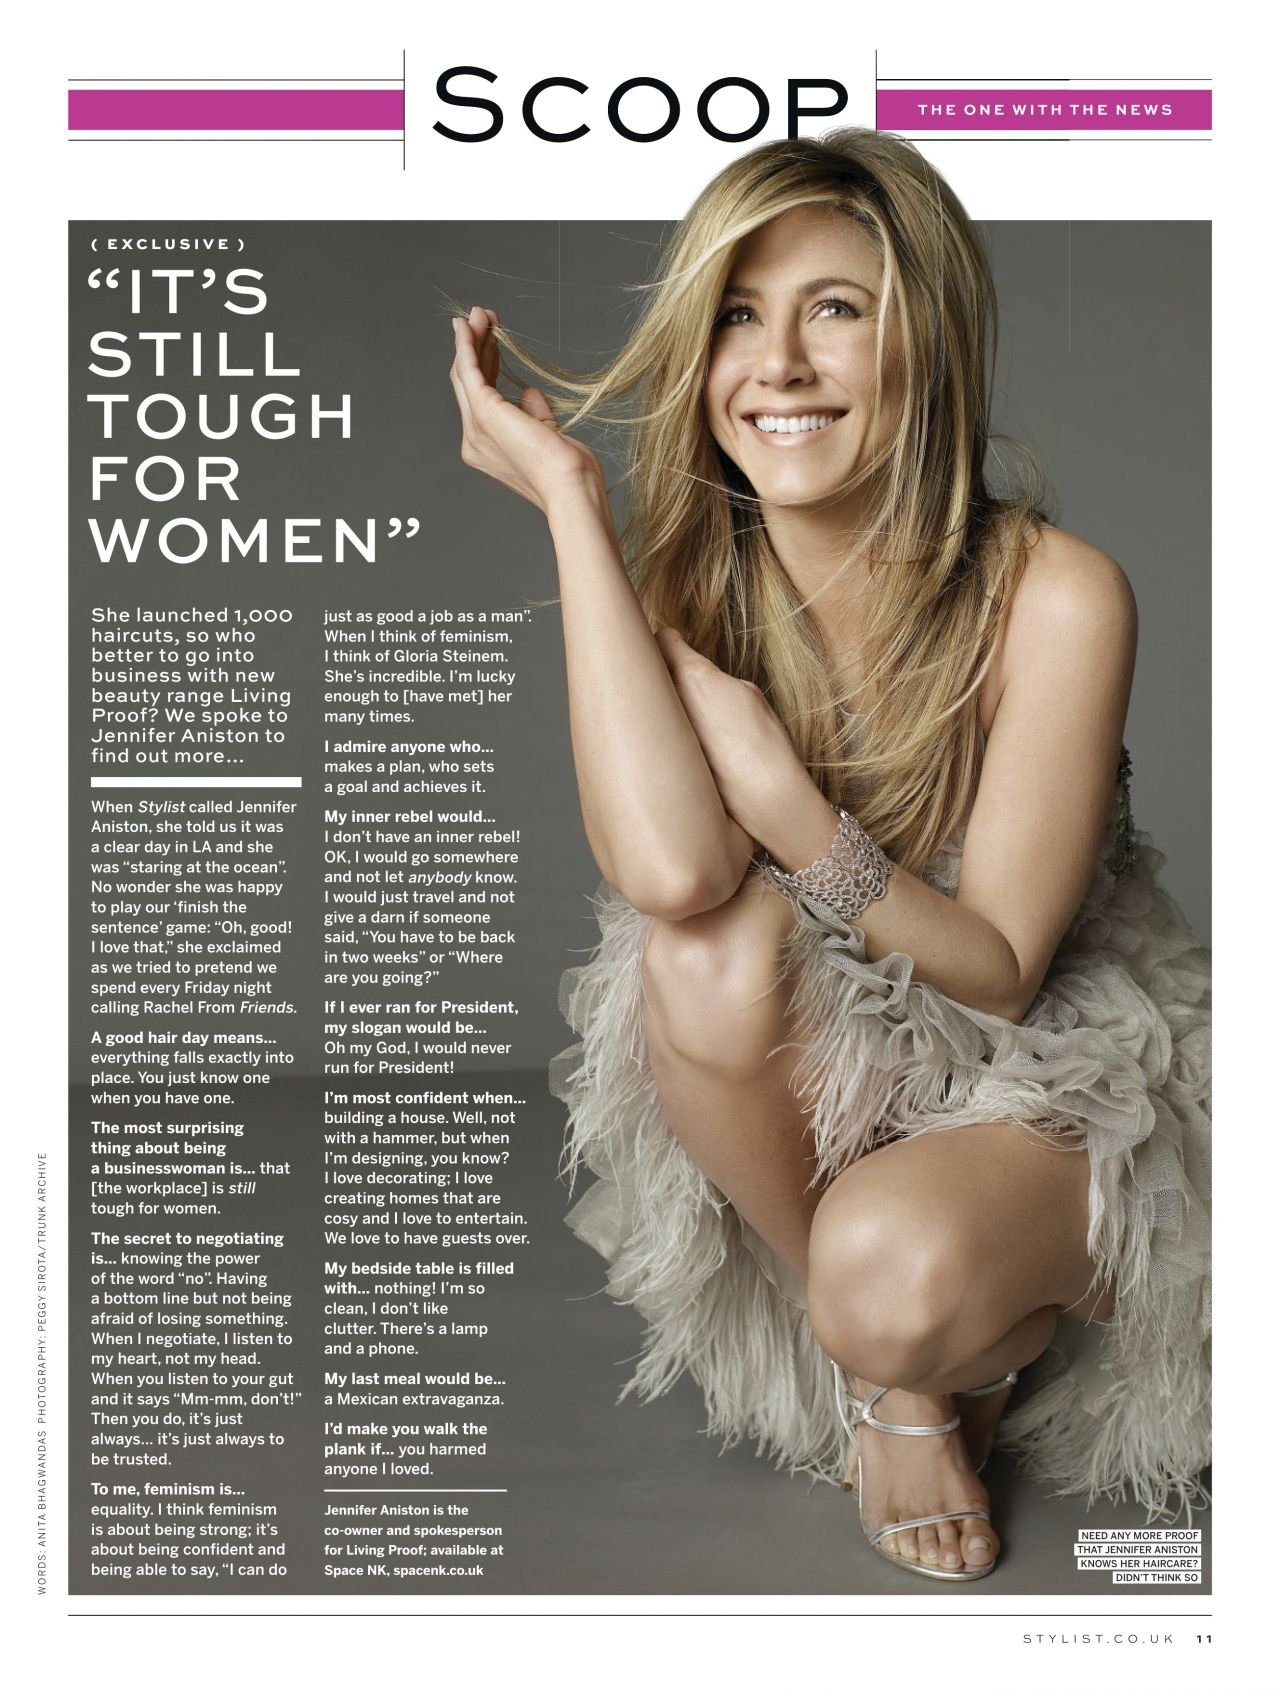 Jennifer Aniston - STYLIST Magazine - November 2013 Issue